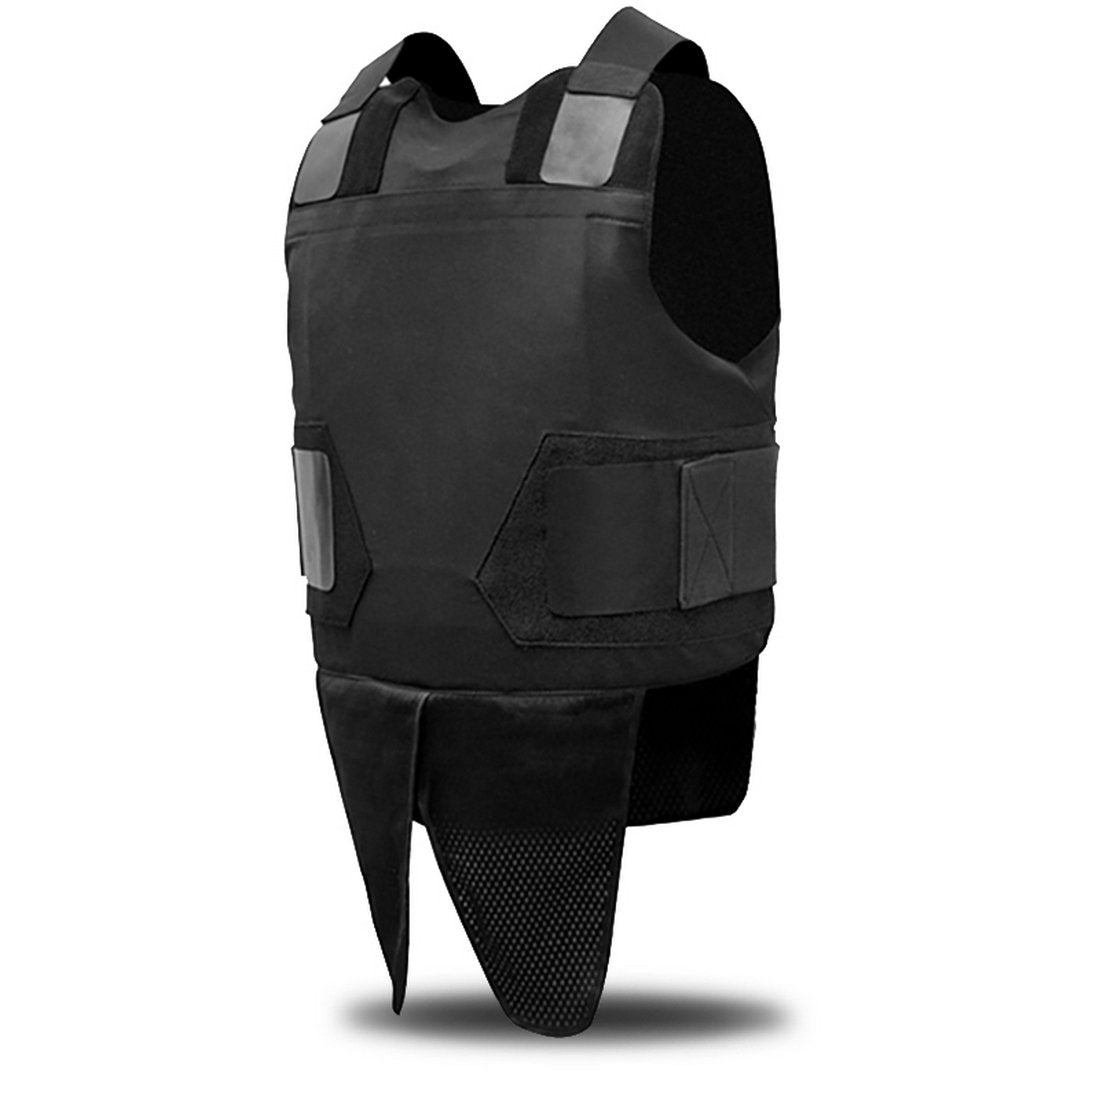 [2018]SecPro CVIIIA Concealable BulletProof Vest[Level IIIA]